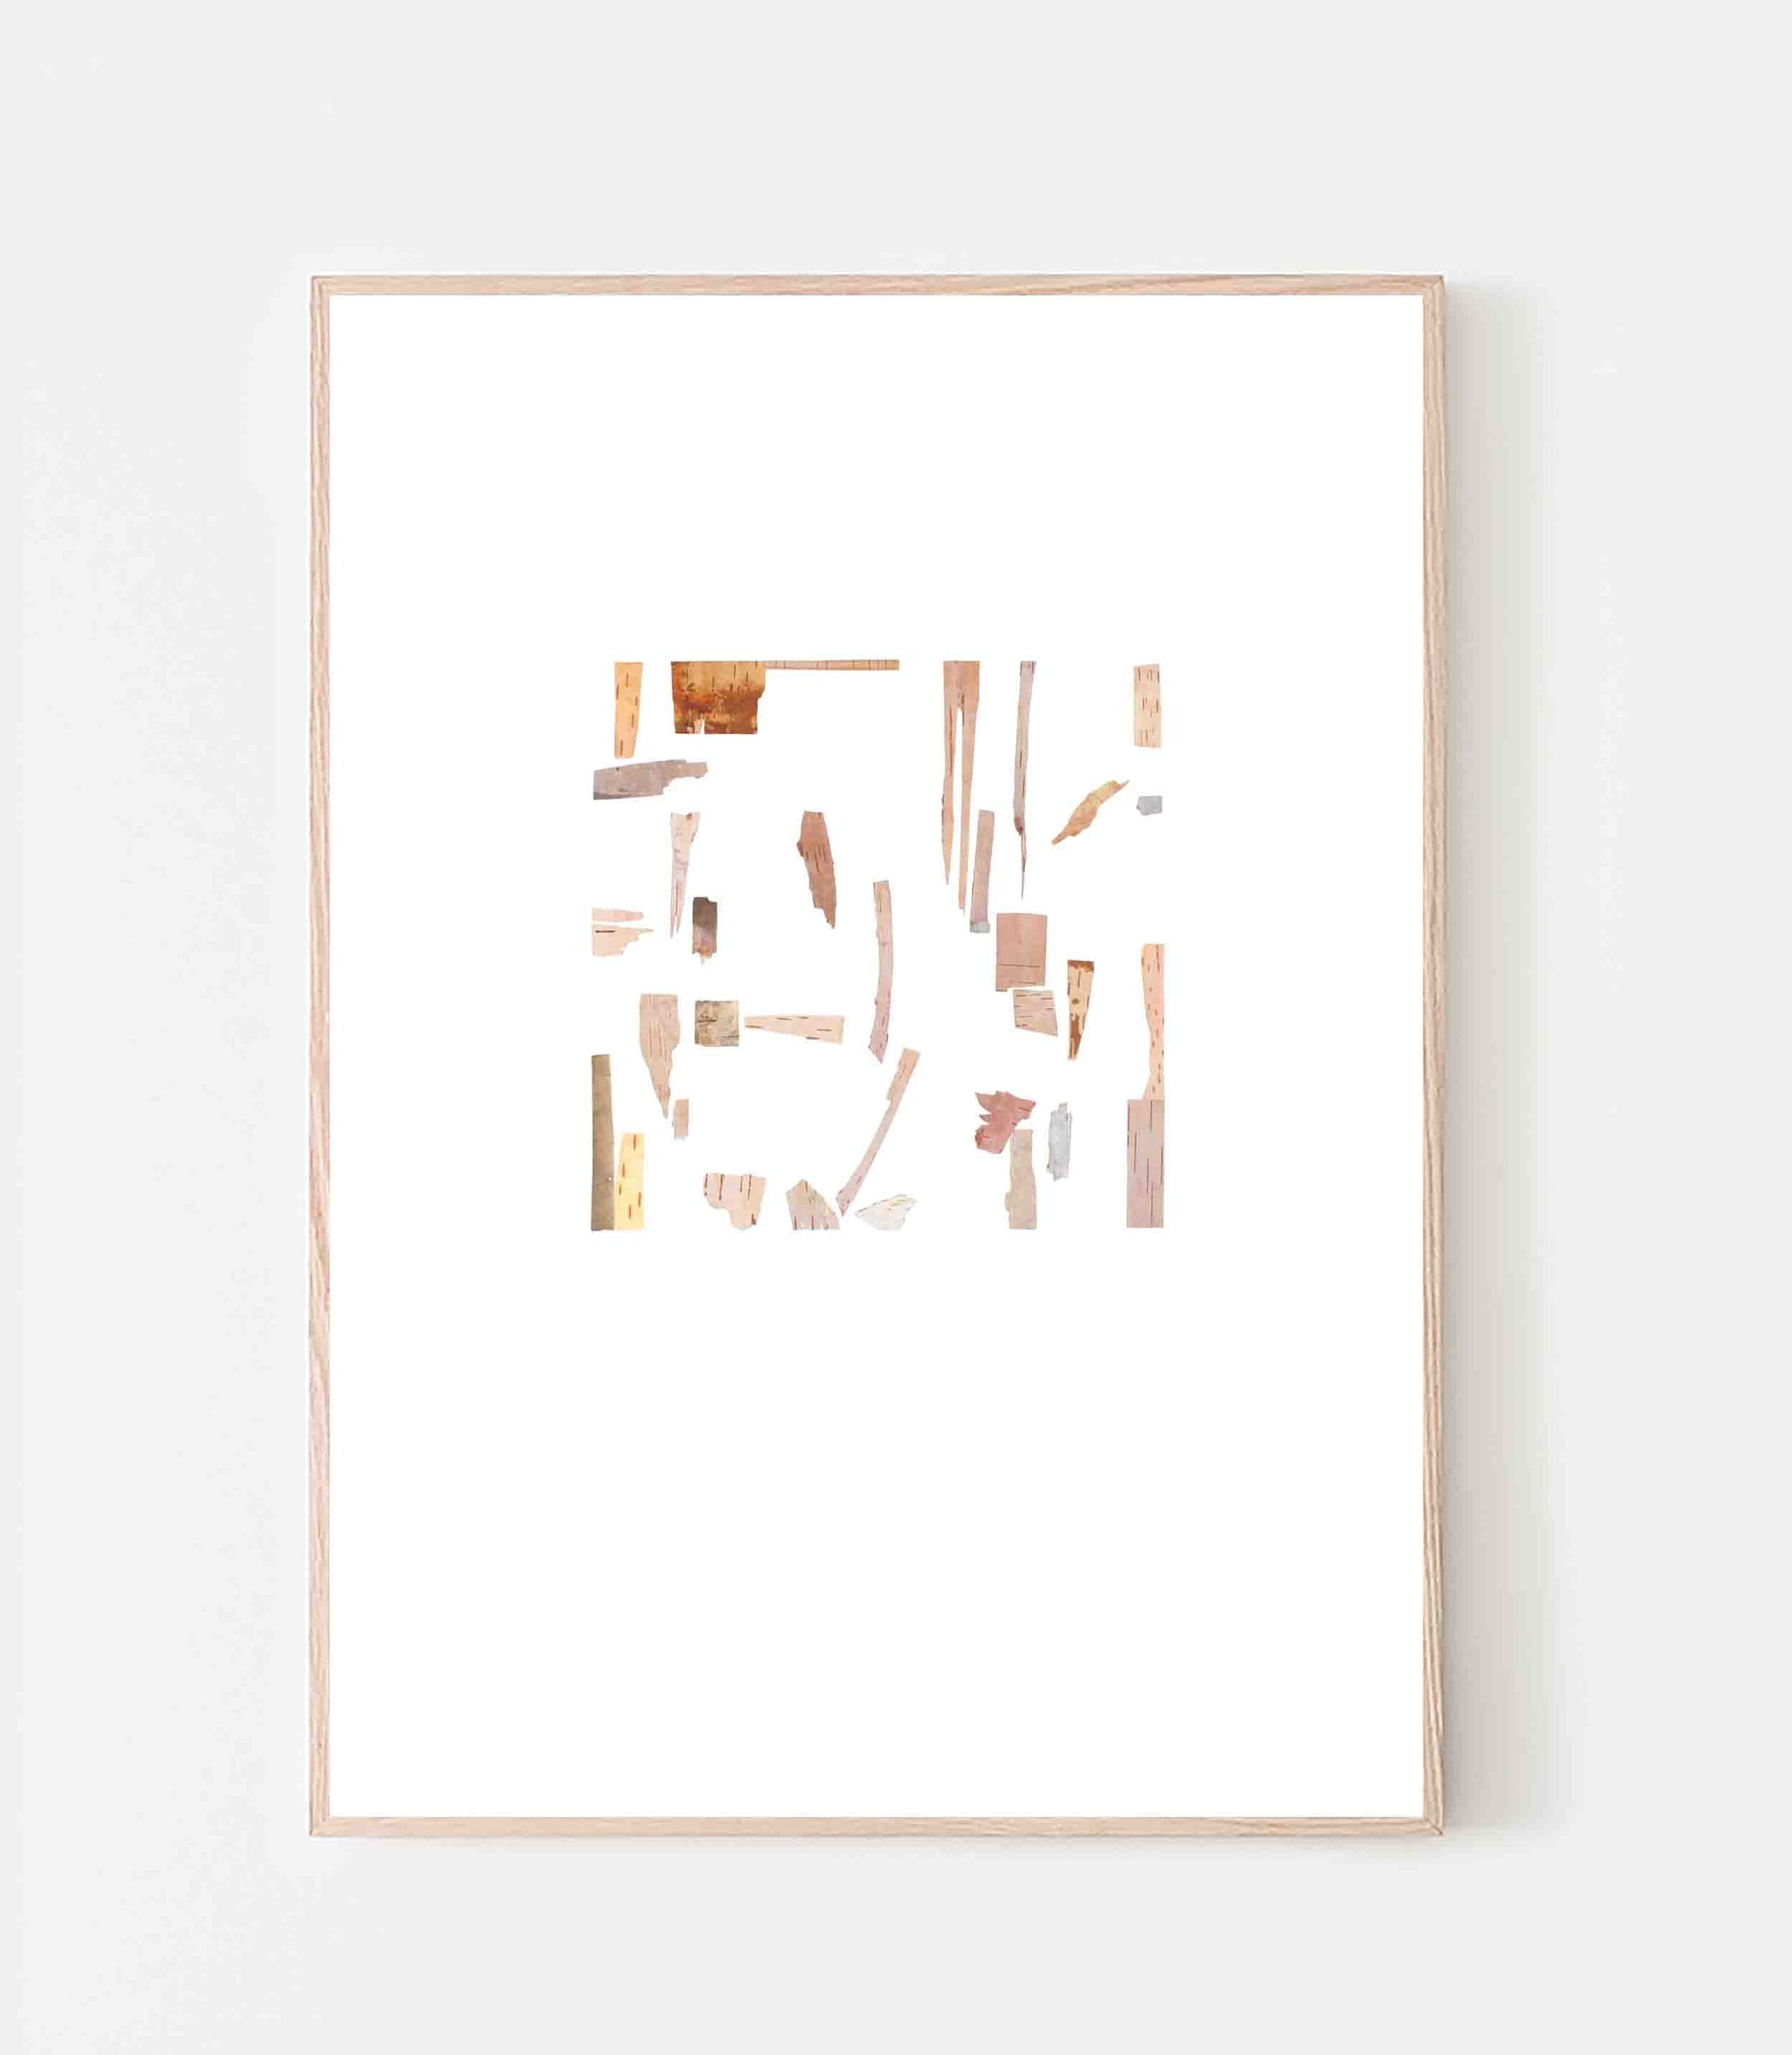 Square Abstracted Poster